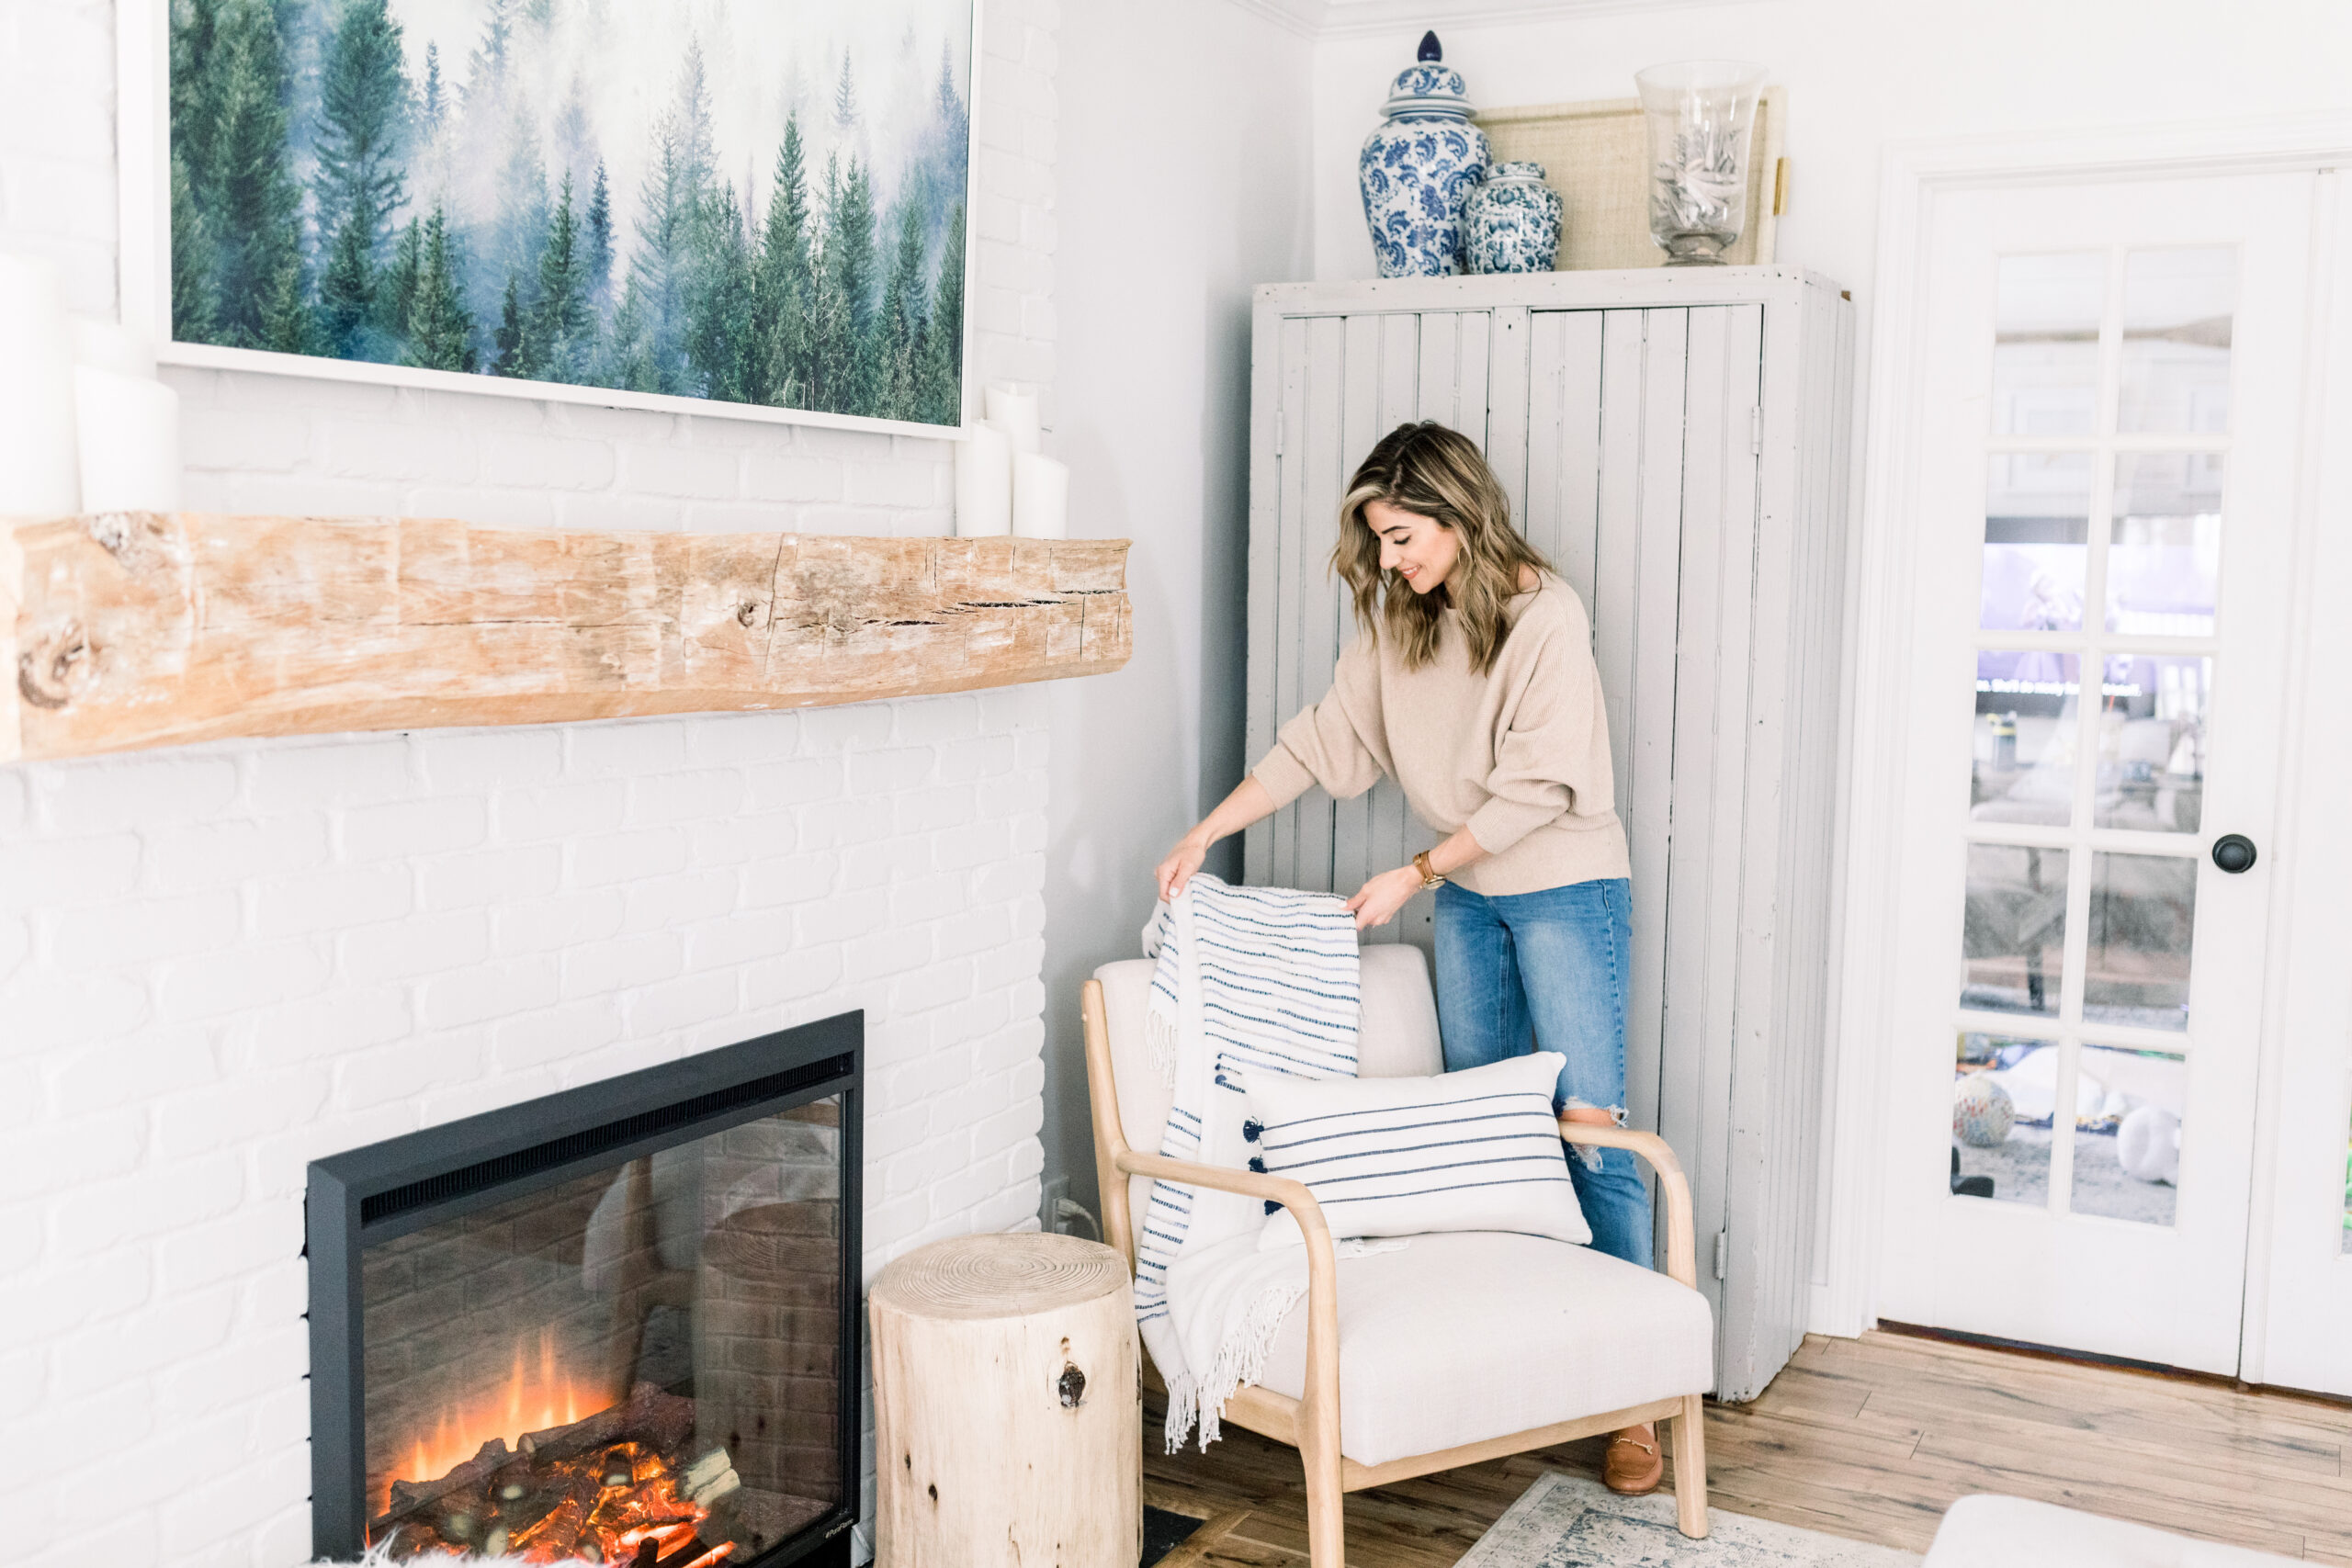 Connecticut life and style Lauren McBride shares her new self-designed home decor line, available for purchase exclusively on QVC.